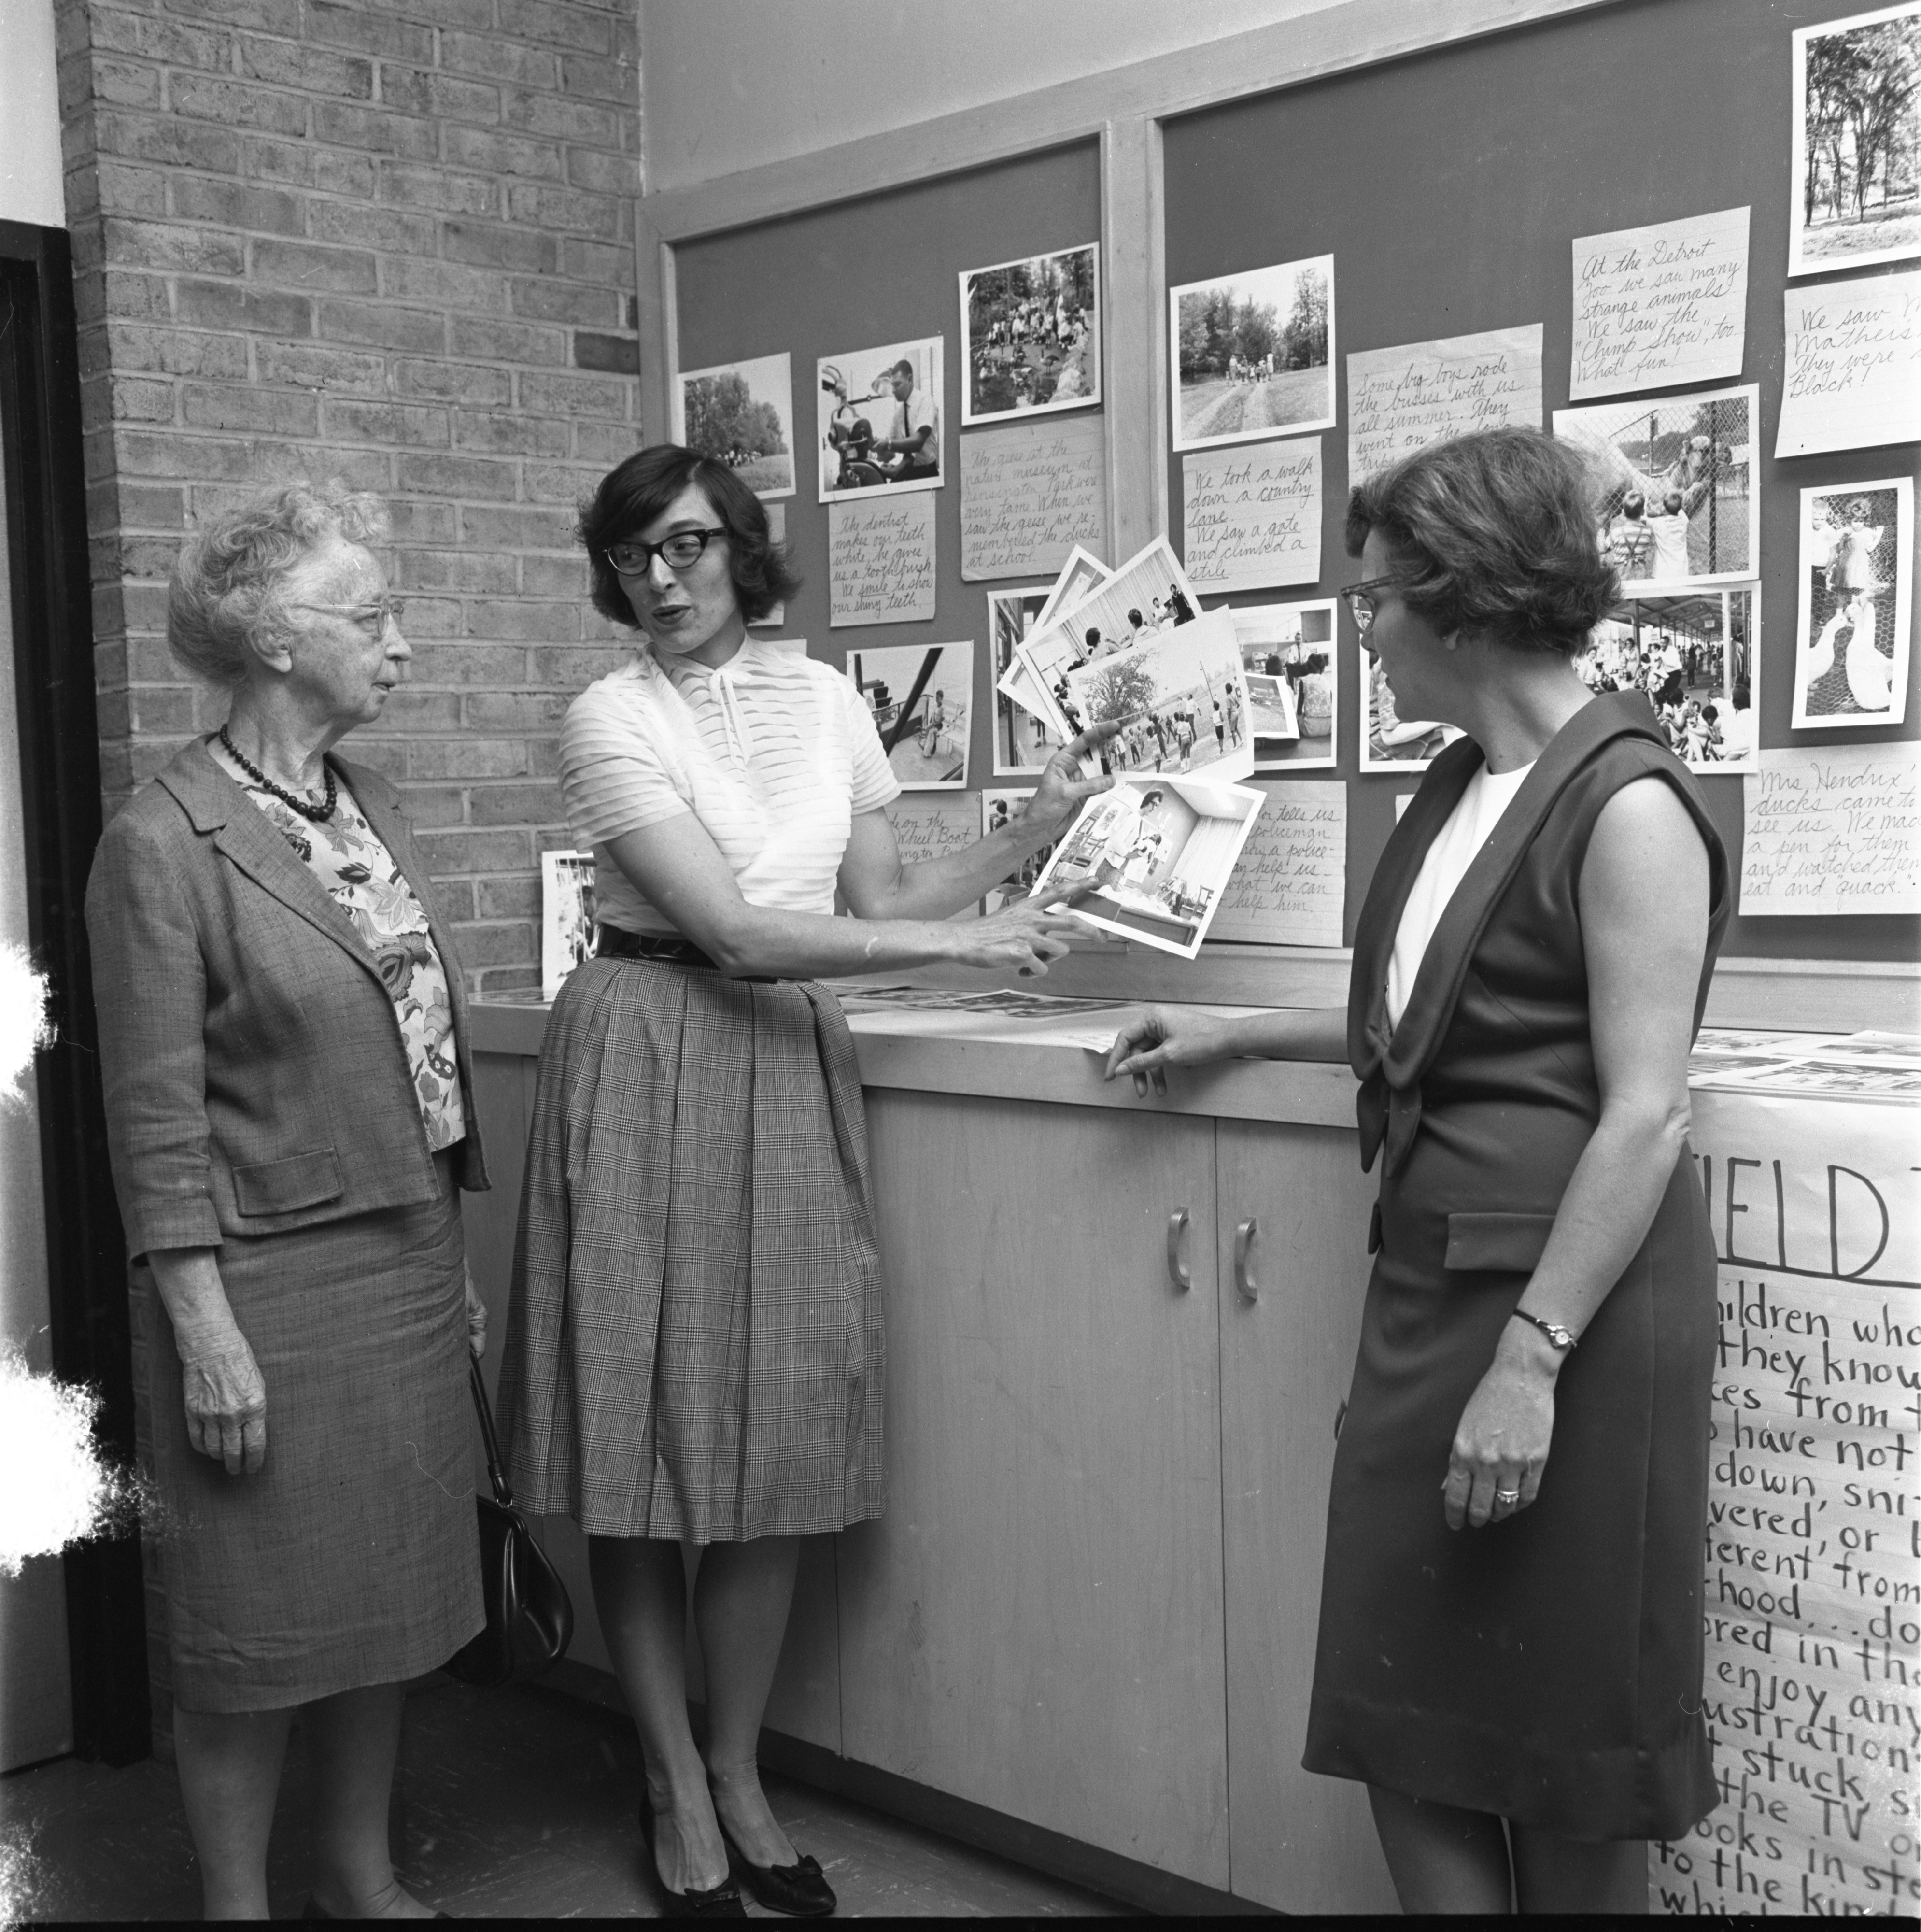 Operation Headstart Is Presented At The League Of Women Voters Membership Coffee, September 1965 image